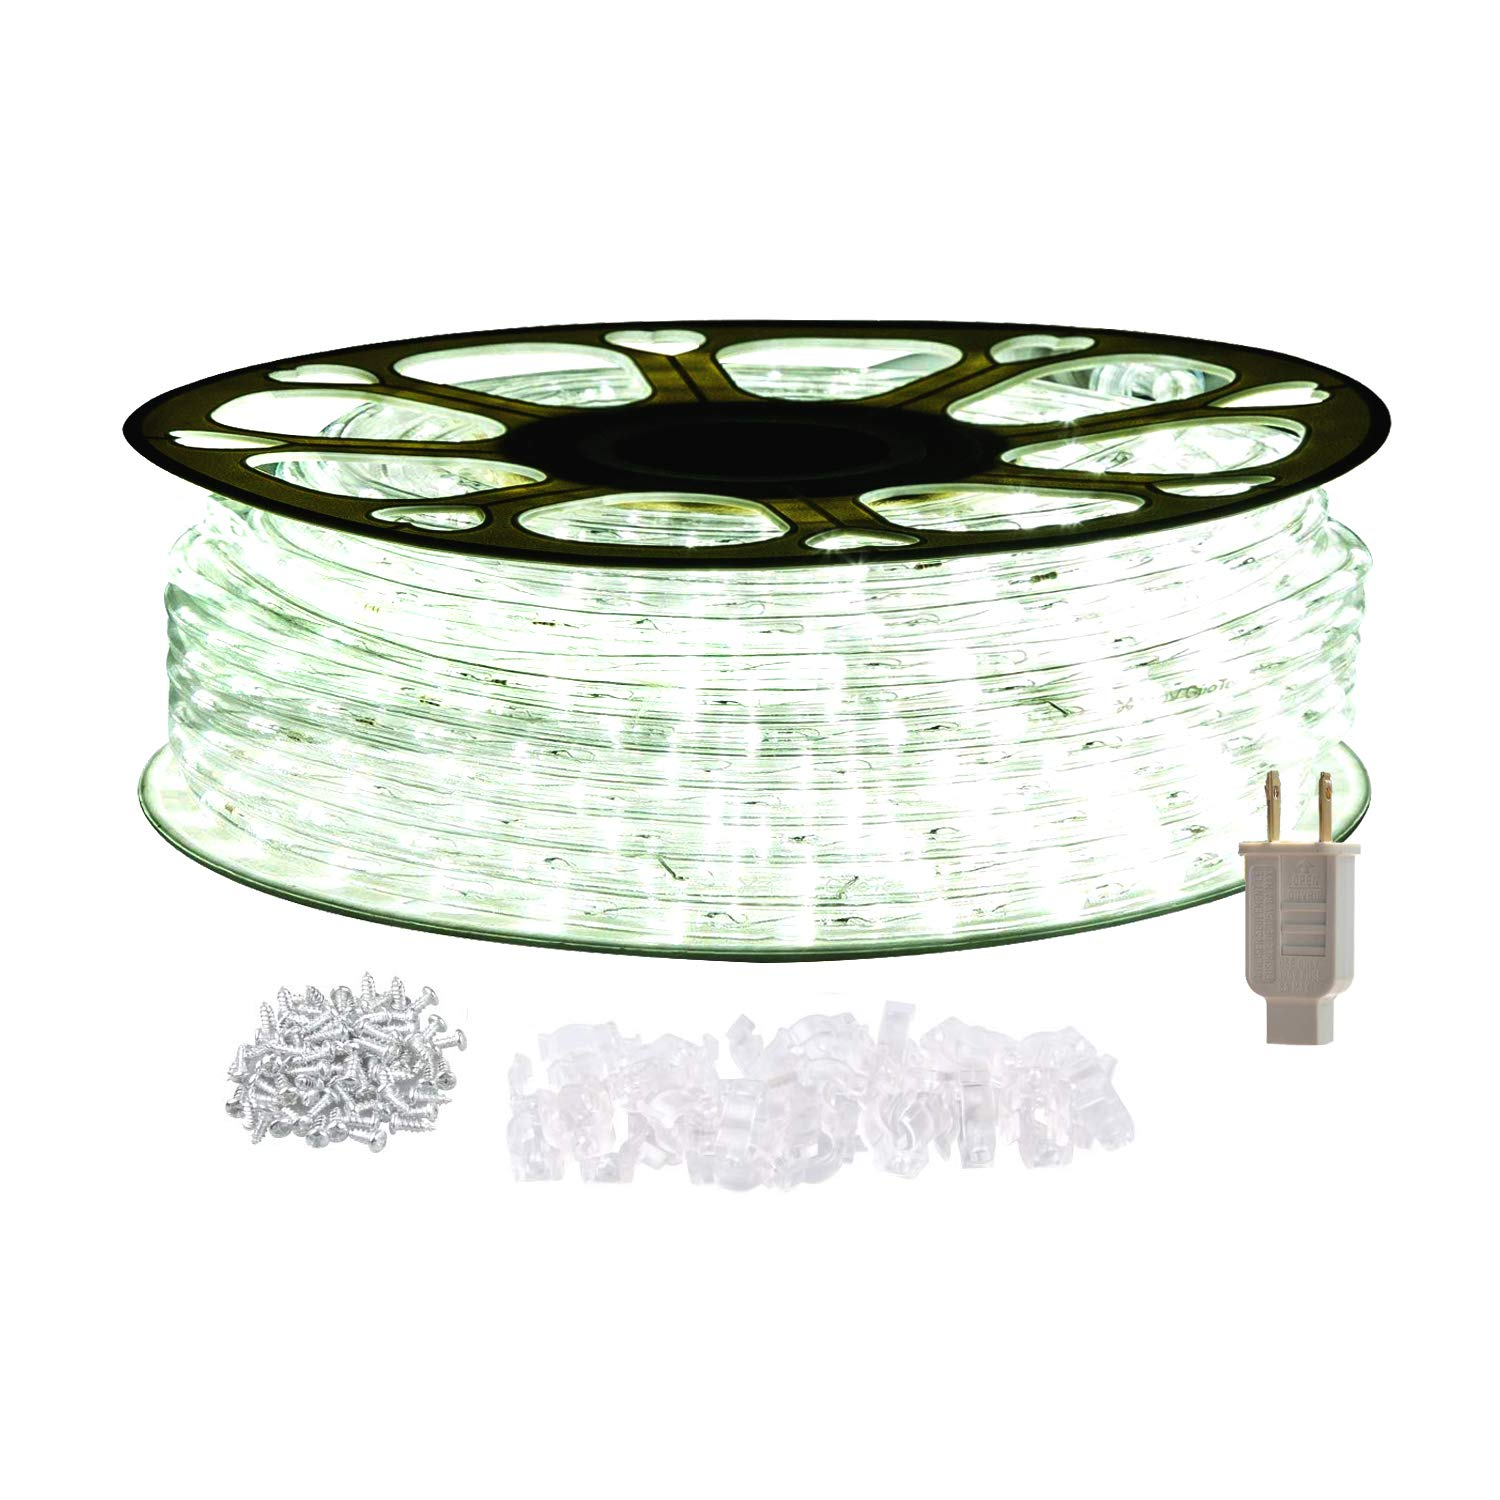 STARSHINE 120V LED Rope Lights,Connectable Waterproof LED String Lights Kit for Patio, Backyard, Garden, Wedding, Christmas Party, Indoor and Outdoor Decorations, UL Listed (50FT/15M, White)